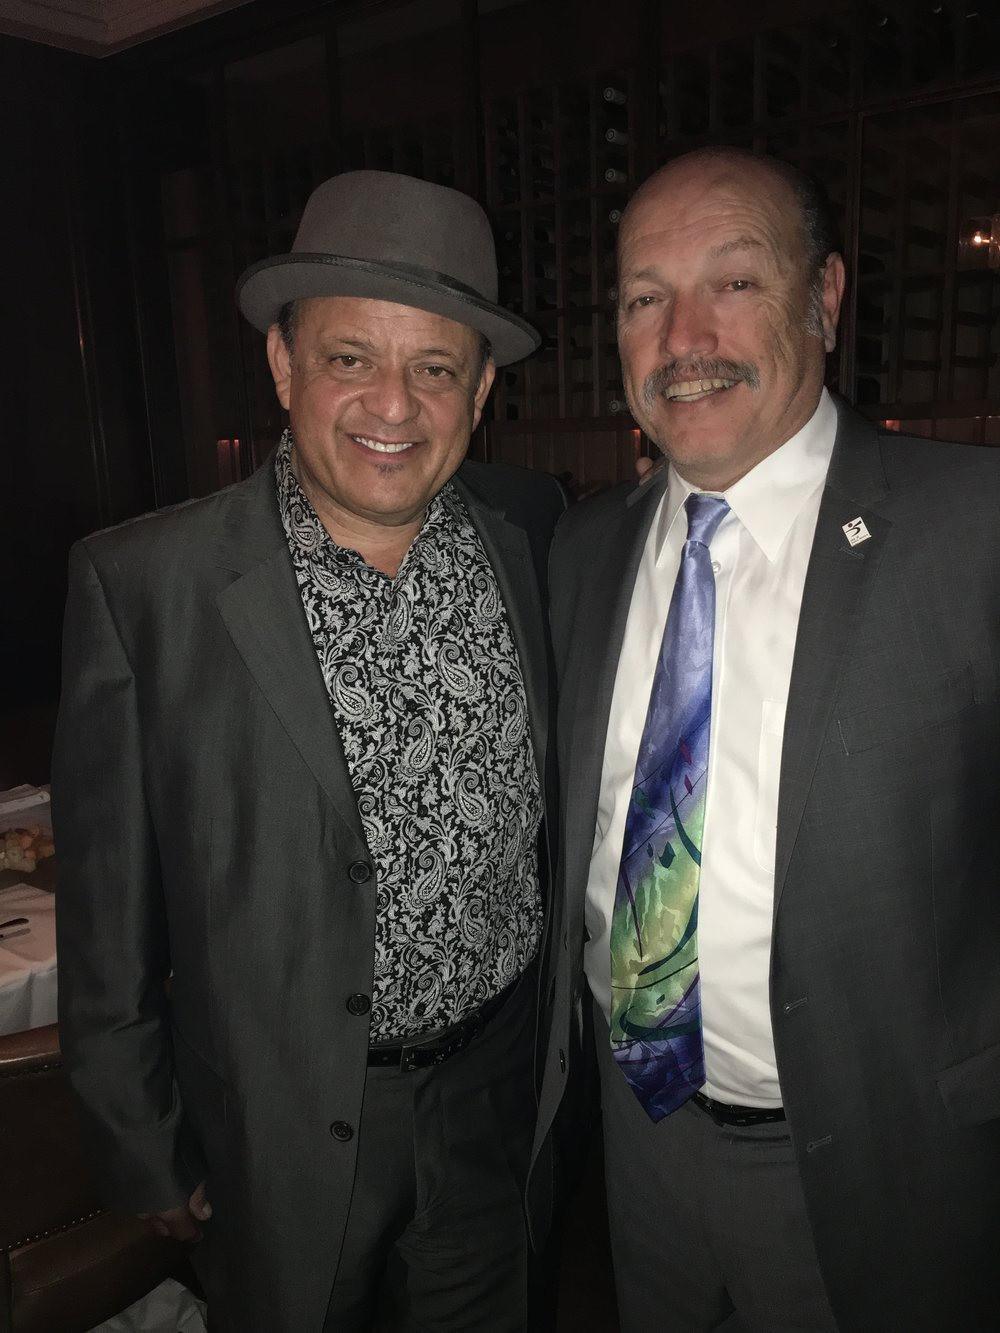 Tony with comedian Paul Rodriguez